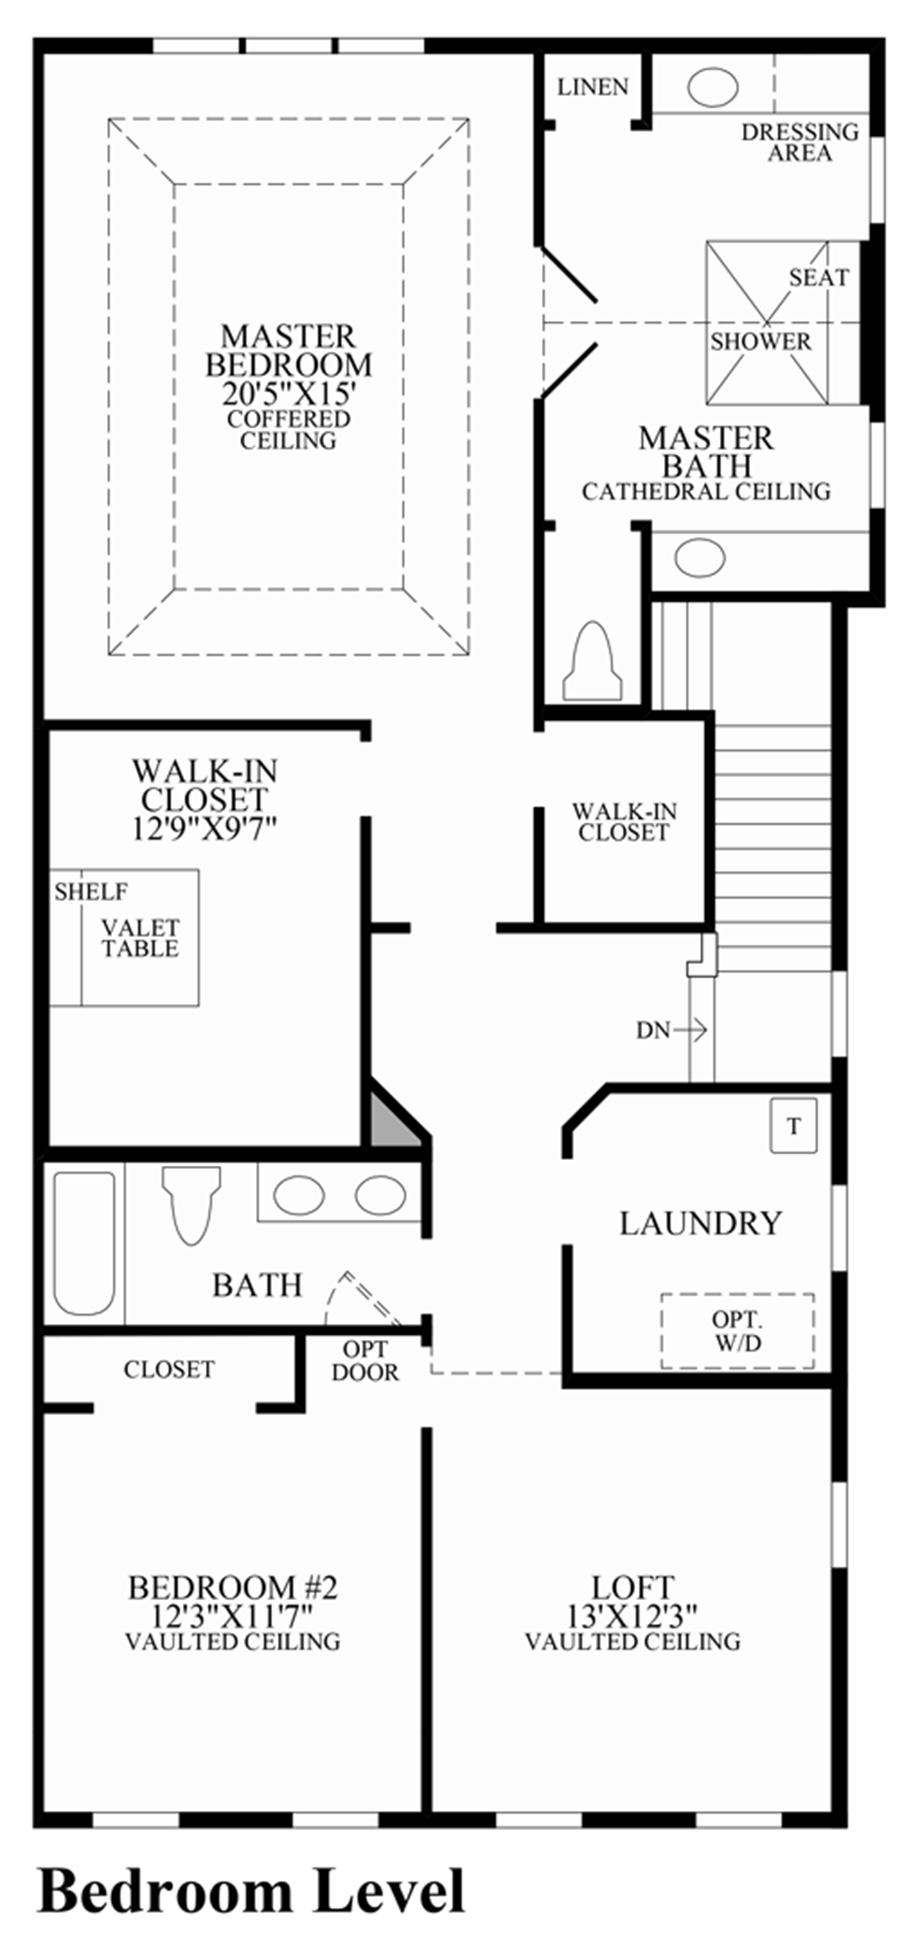 Bedroom Level Floor Plan